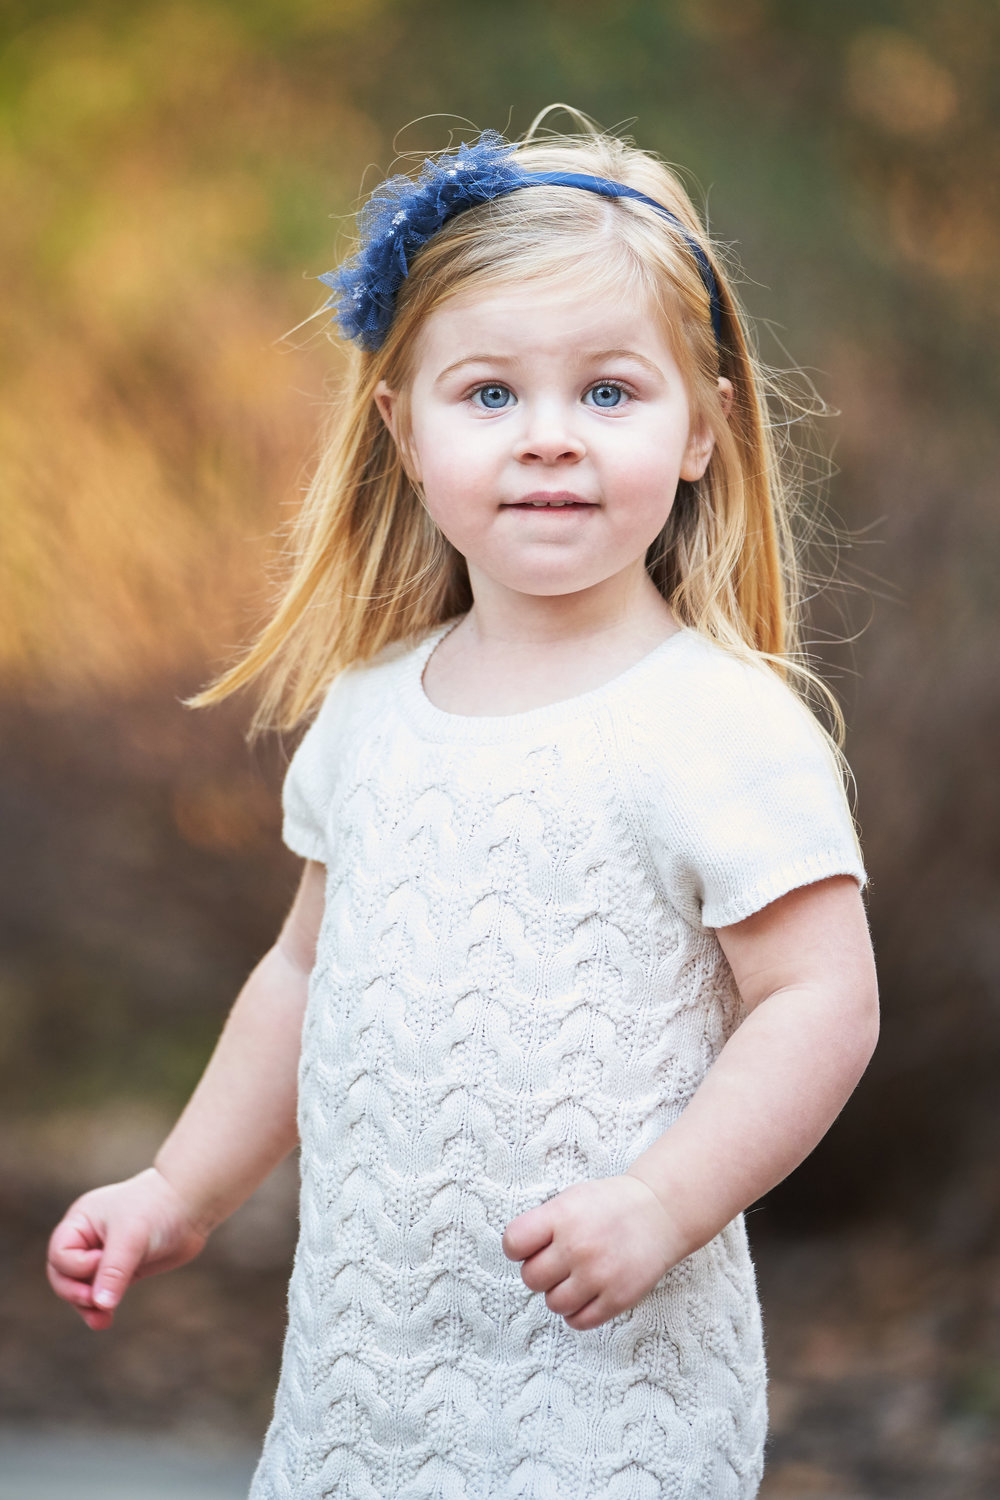 Little Sister | Family Photo Session at the Clemson Botanical Gardens